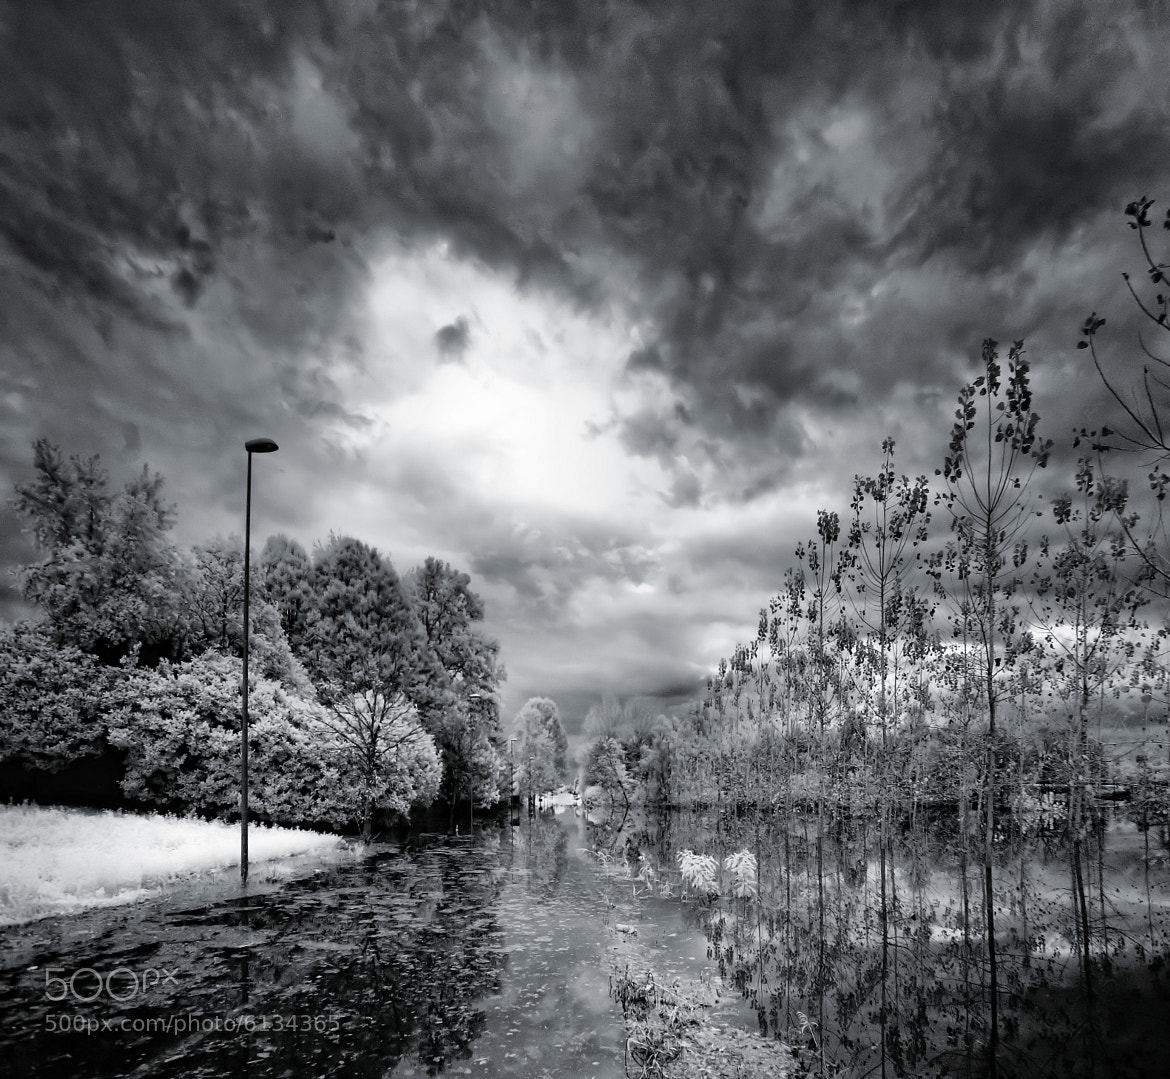 Photograph infrared storm by lorenzo savinelli on 500px